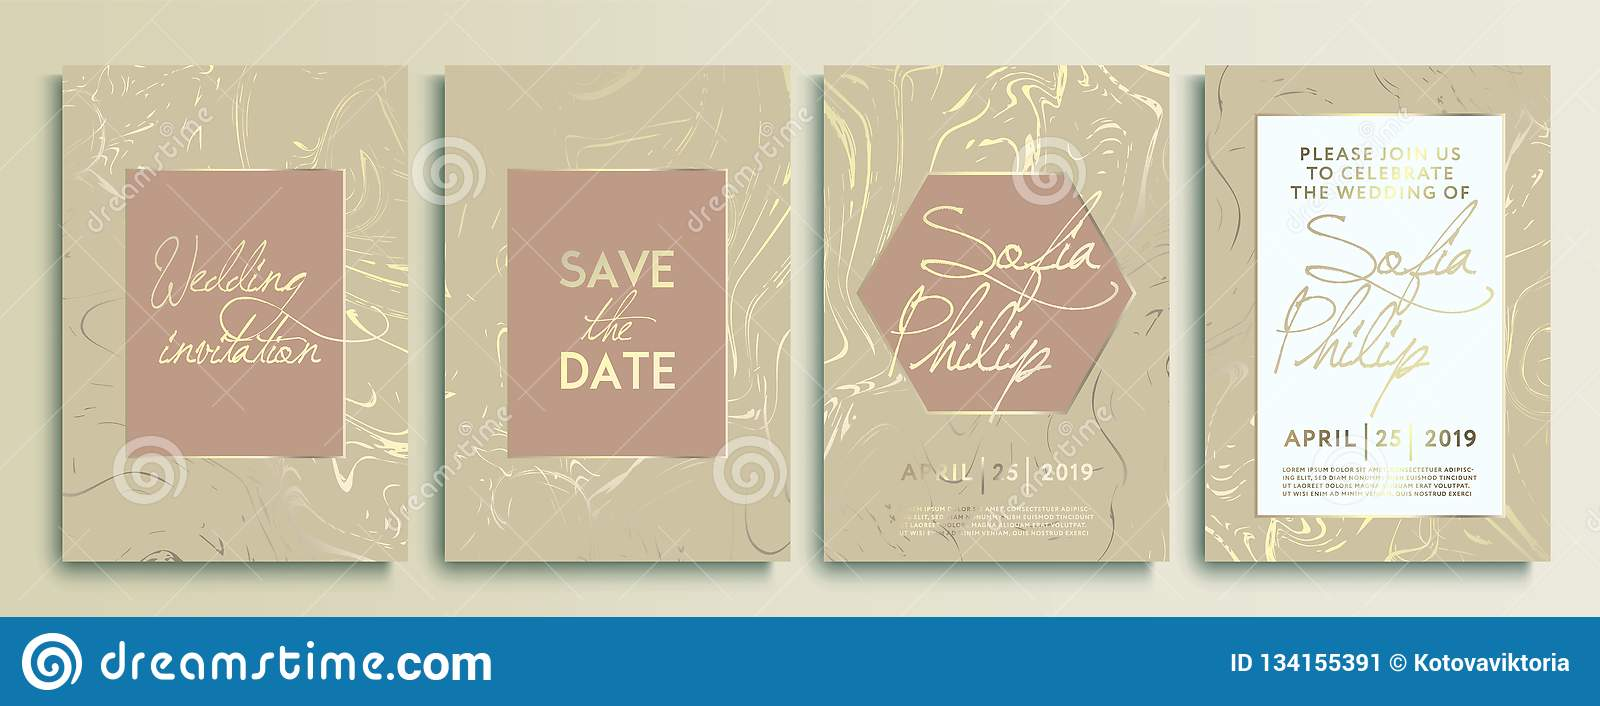 Wedding Invitation Cards With Marble Texture Background And